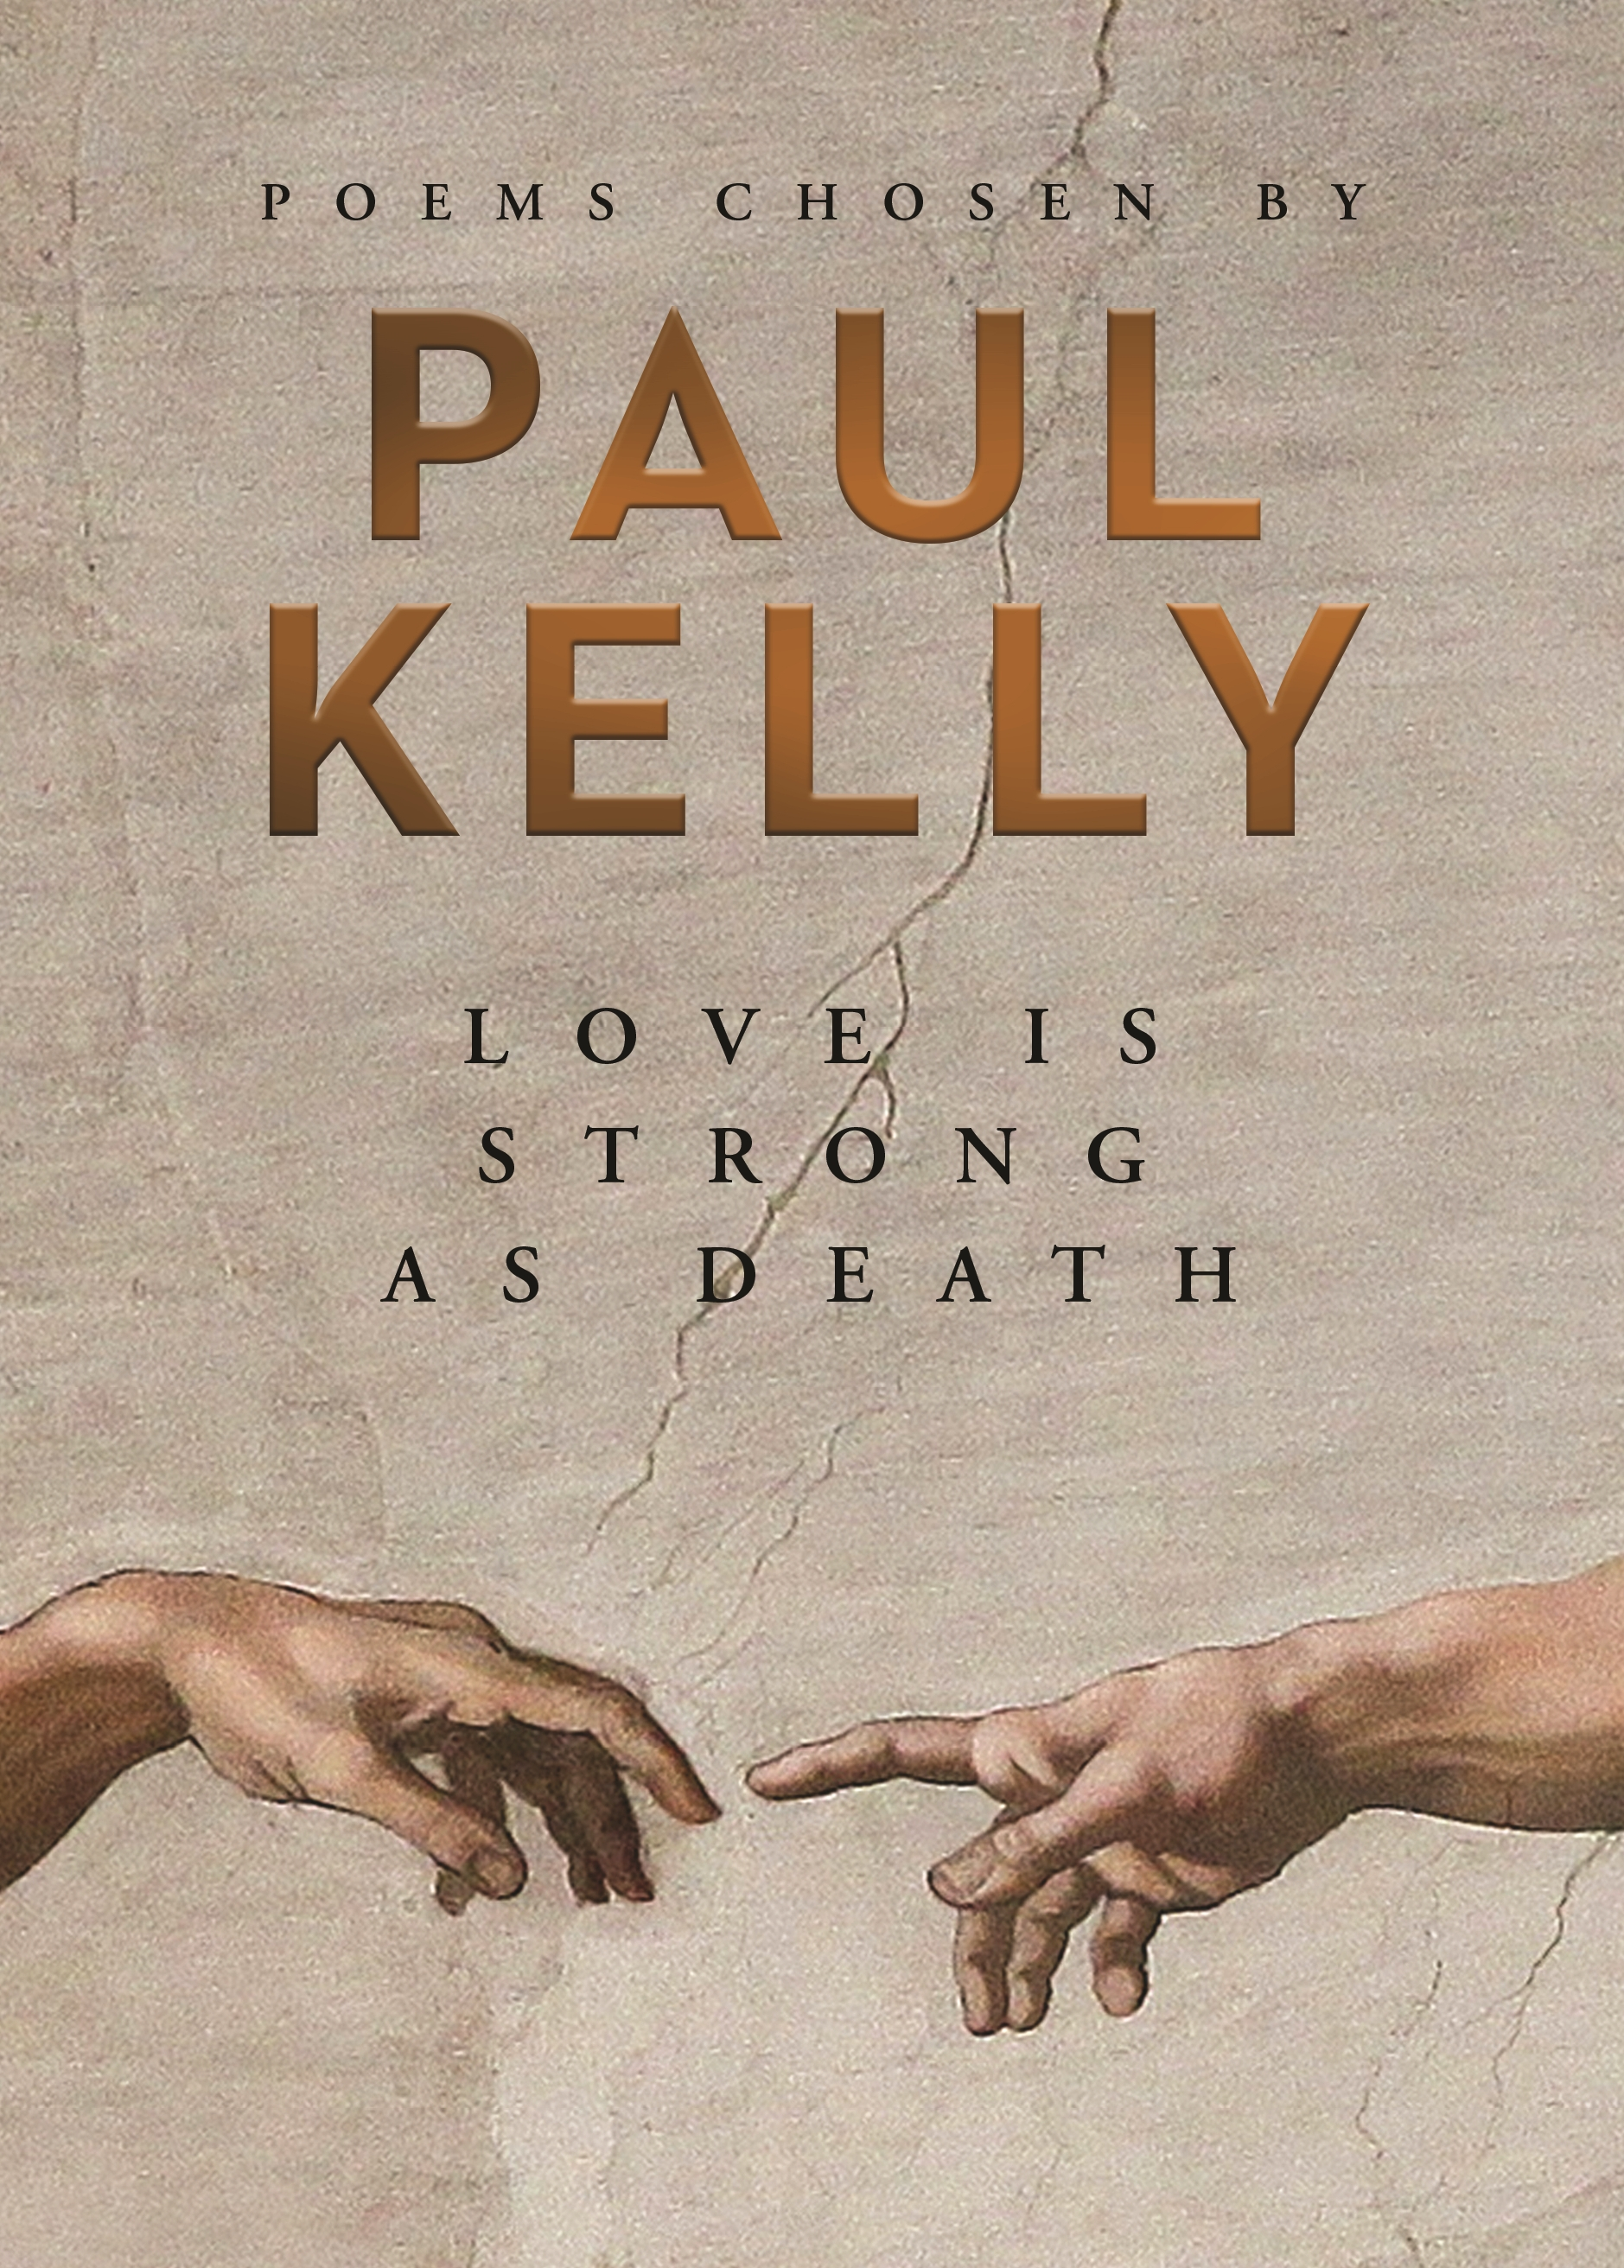 Image result for love is strong as death poems chosen by paul kelly